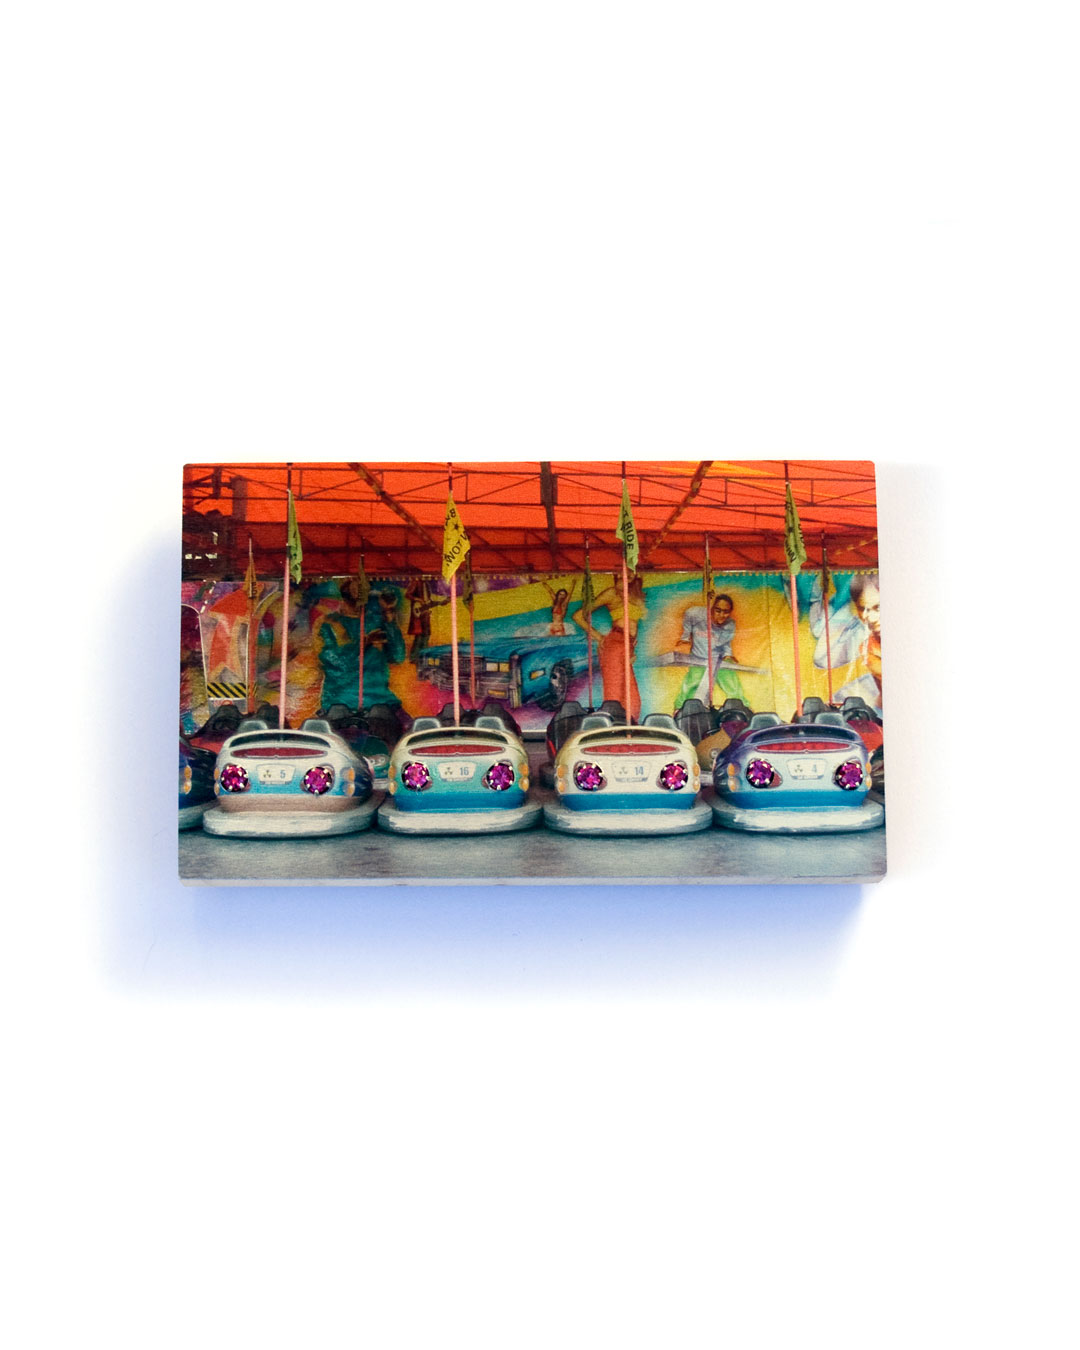 Herman Hermsen, Carnival Cars, 2015, brooch; print on aluminium, wood, zirconia, 49 x 78 x 12 mm, €300